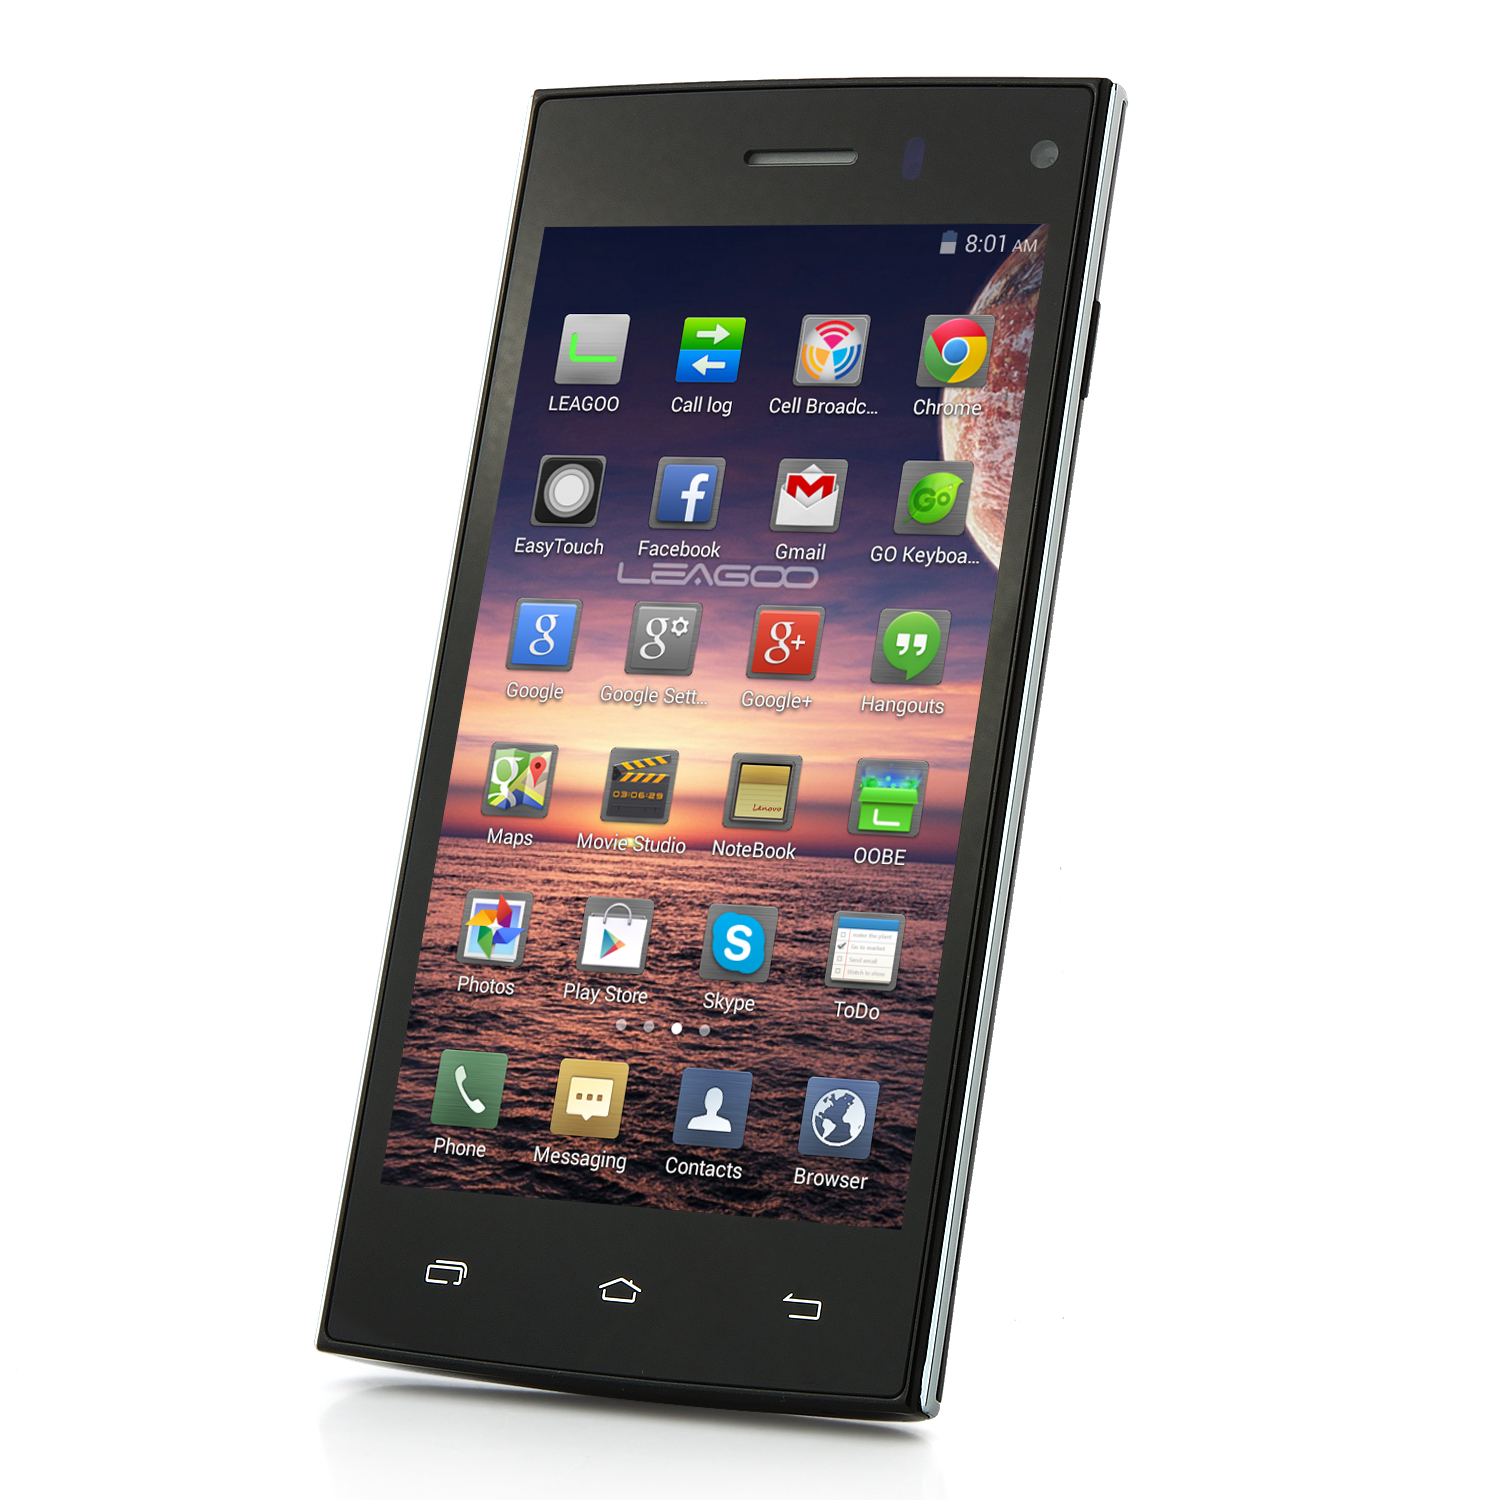 Leagoo Lead 3 Smartphone Android 4.4 MTK6582 4.5 Inch QHD Screen 3G GPS Black